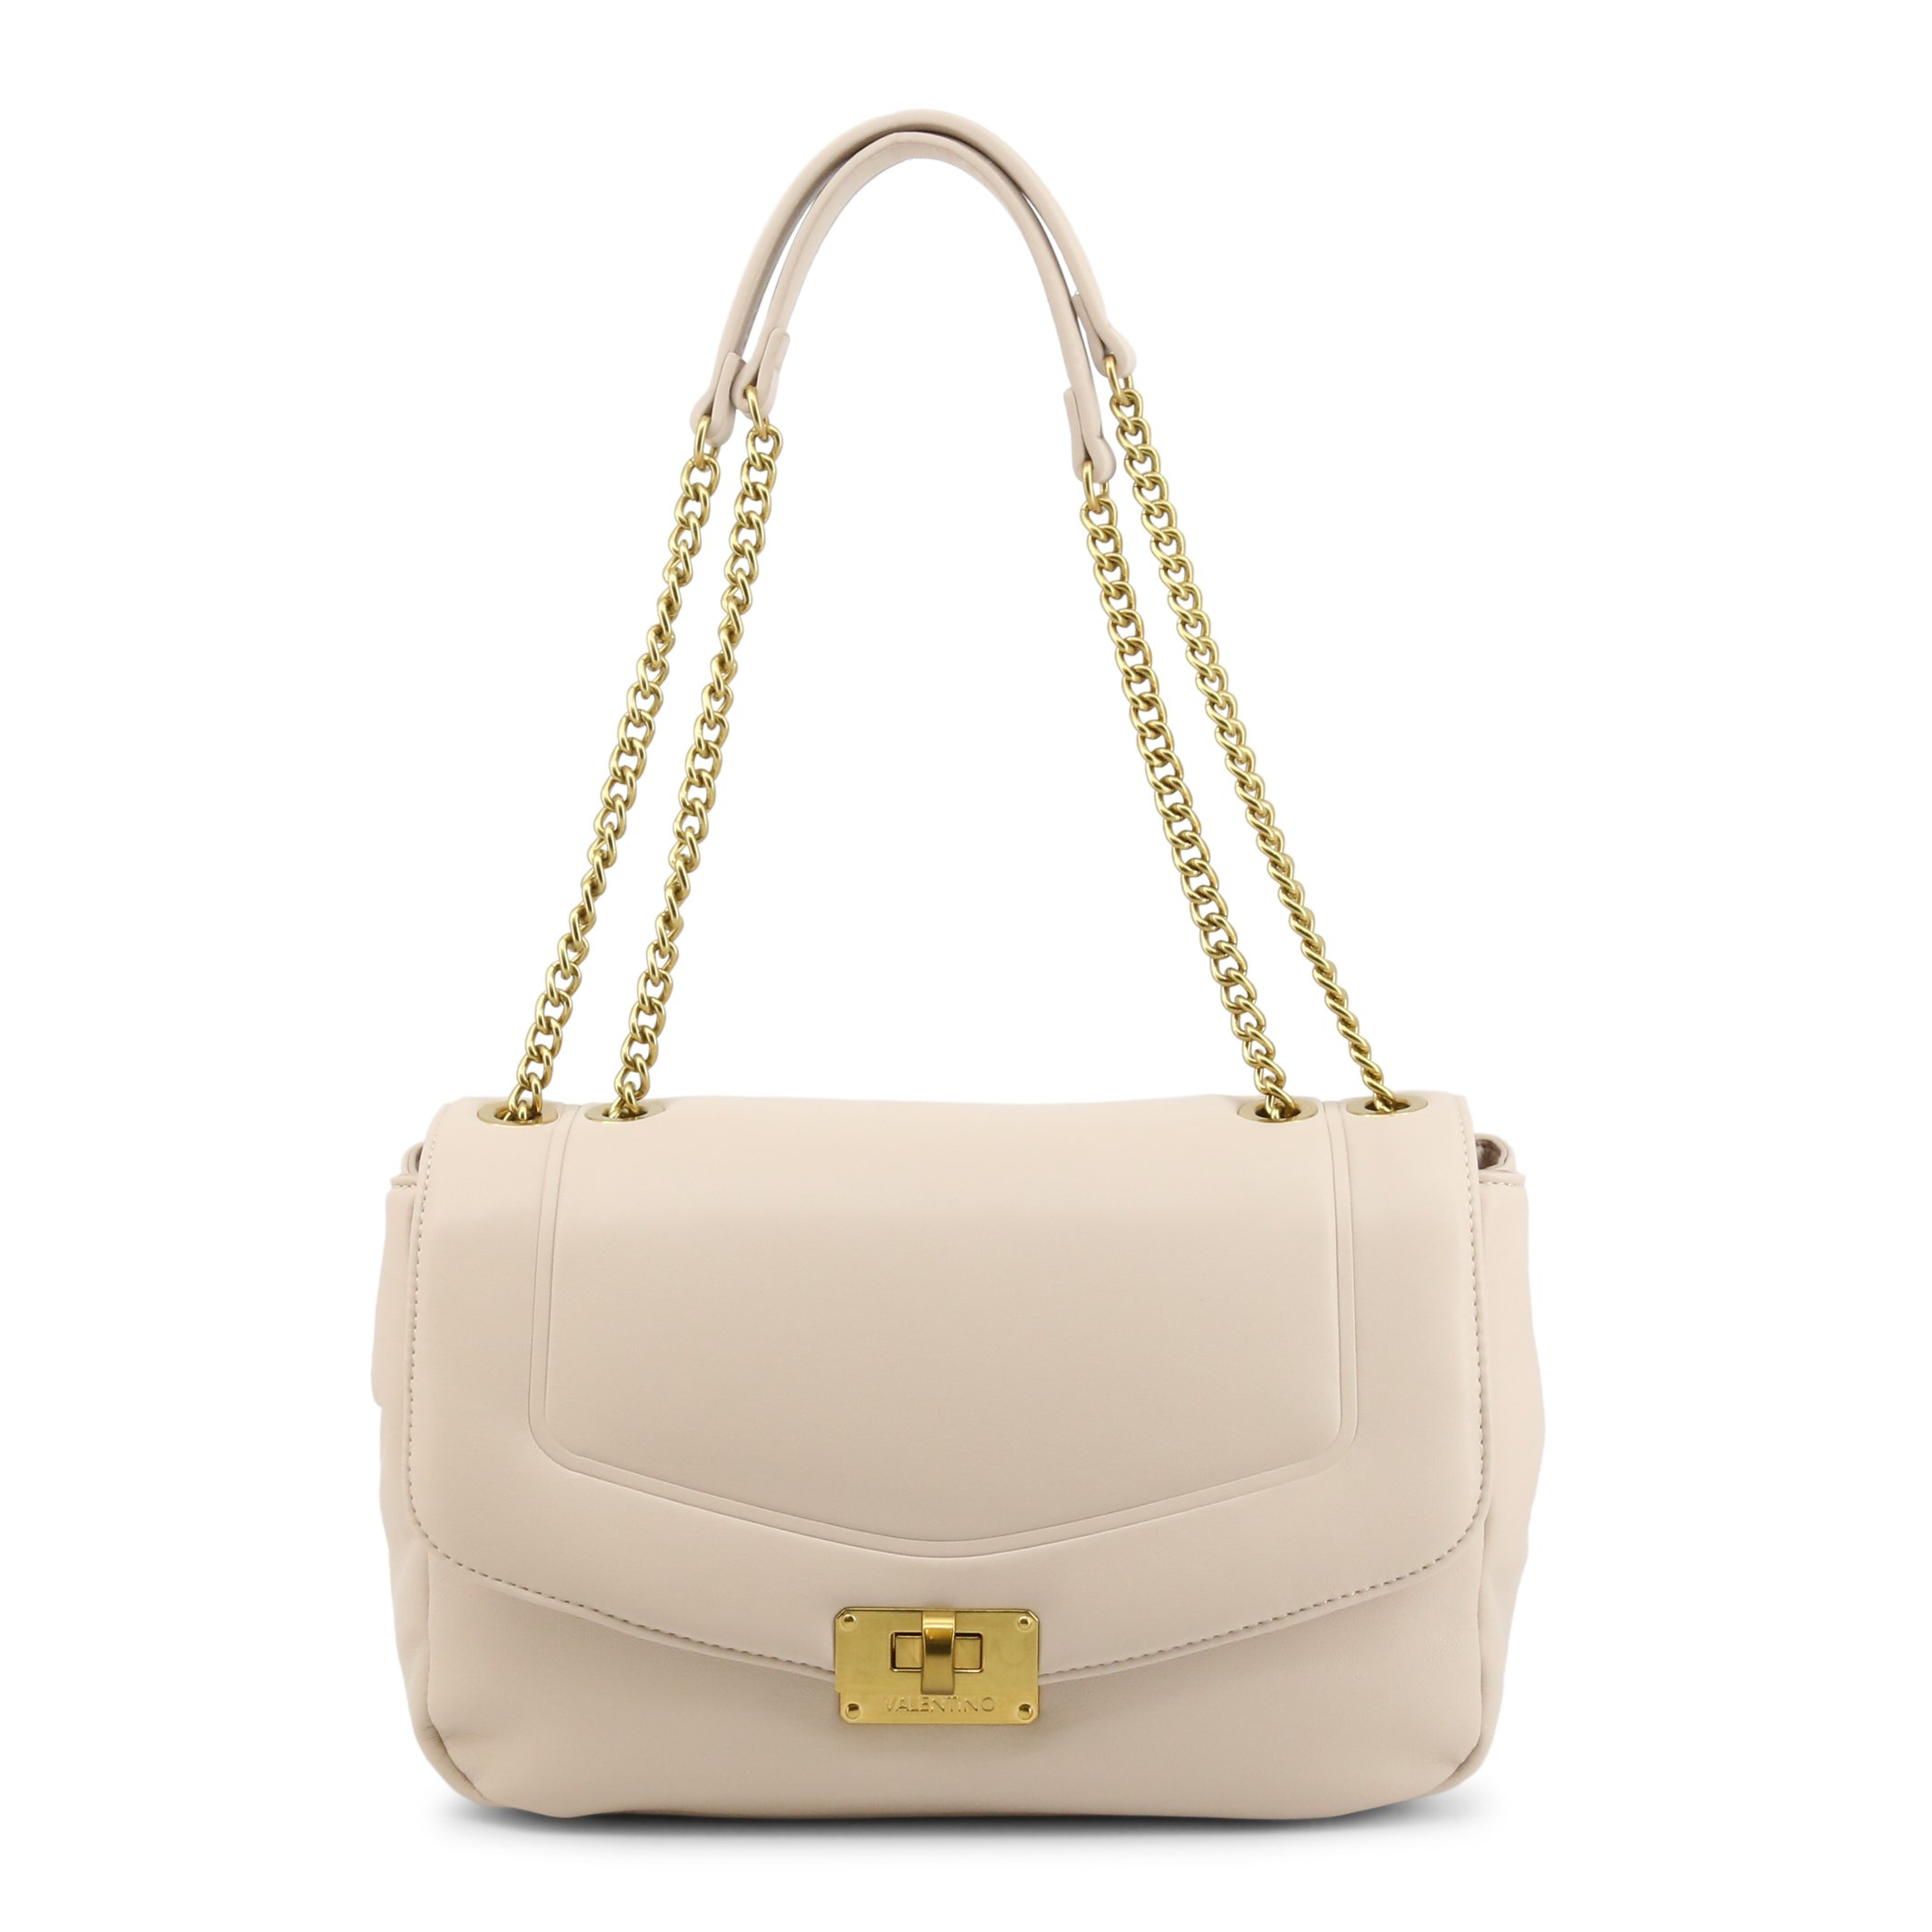 Valentino by Mario Valentino Women's Shoulder Bag Various Colours DAM-VBS4N801 - brown-1 NOSIZE